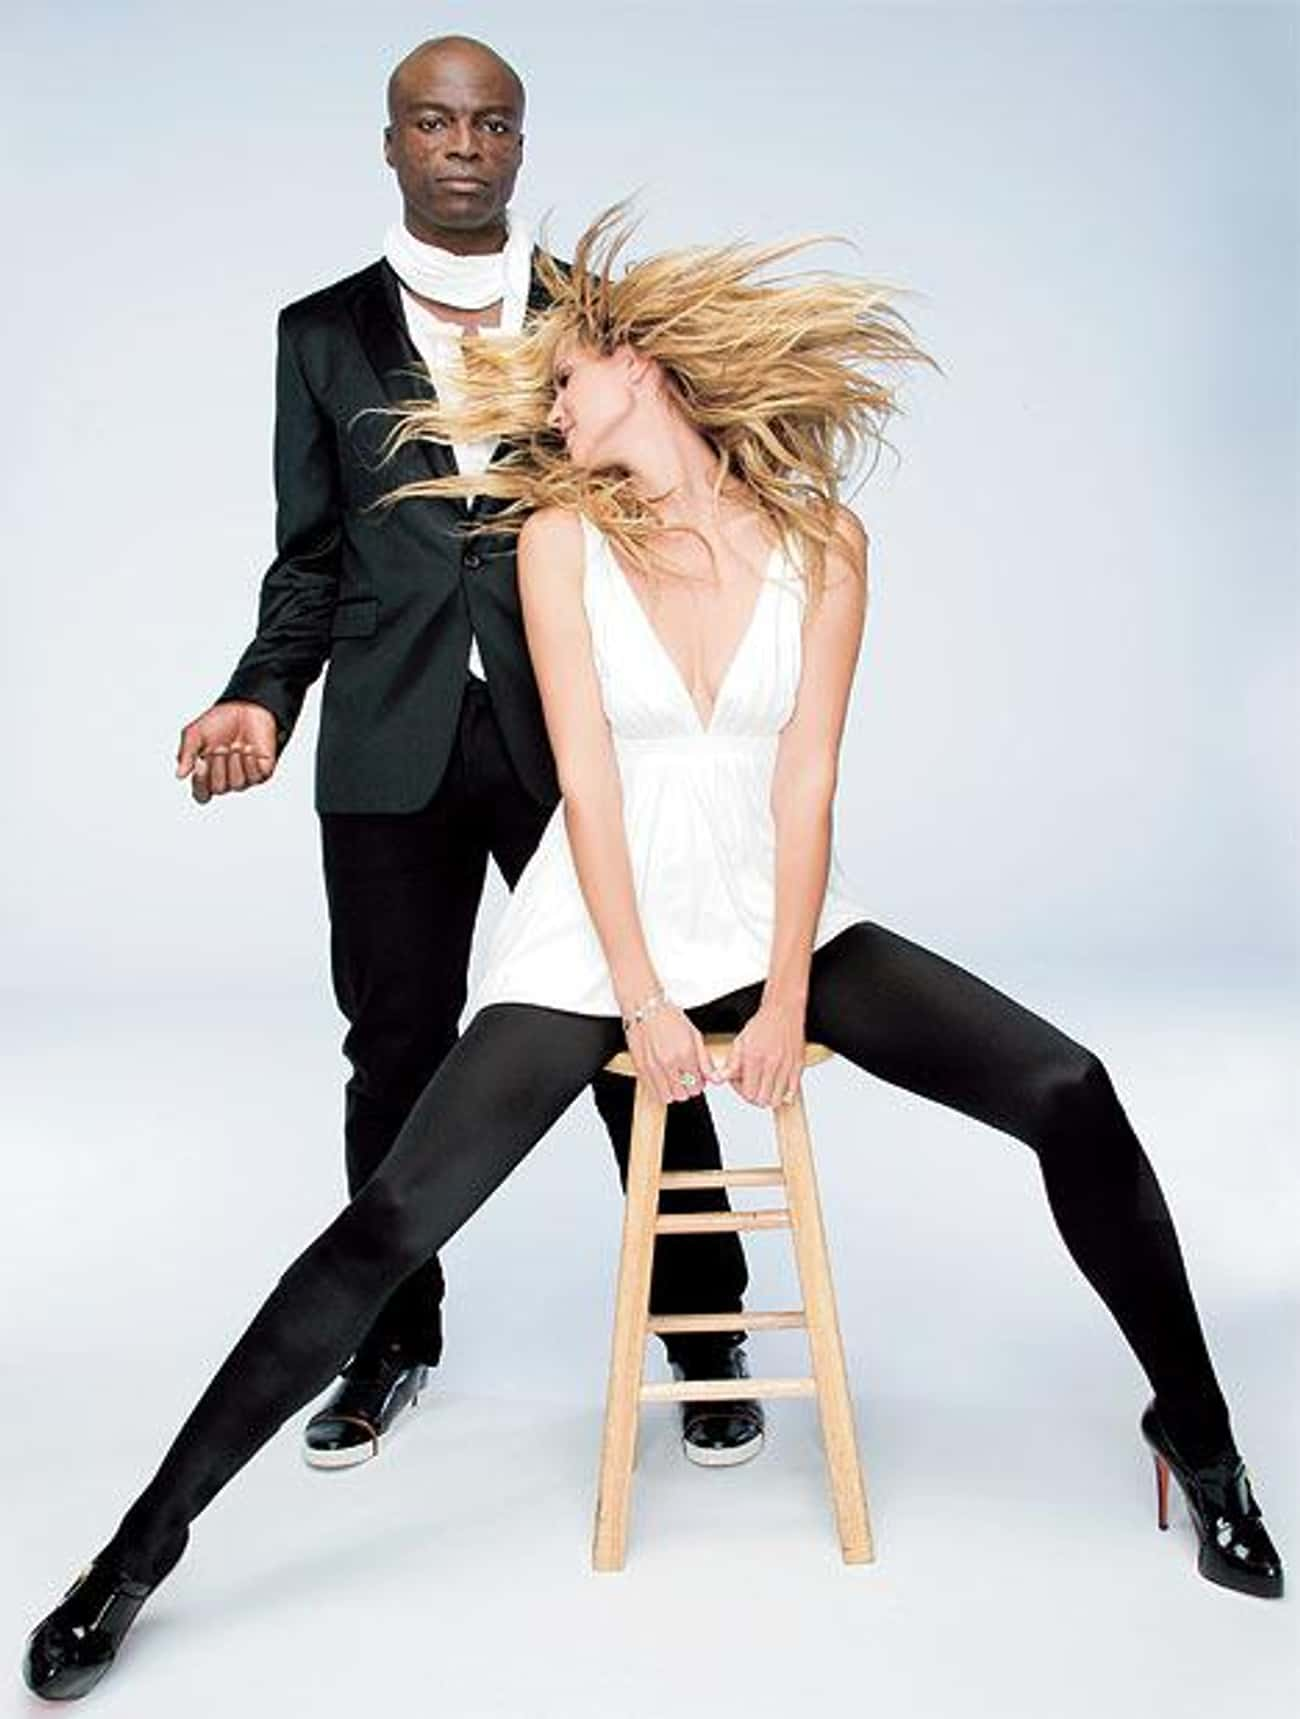 Seal & Heidi Klum is listed (or ranked) 4 on the list The Most Elaborate Celebrity Proposals